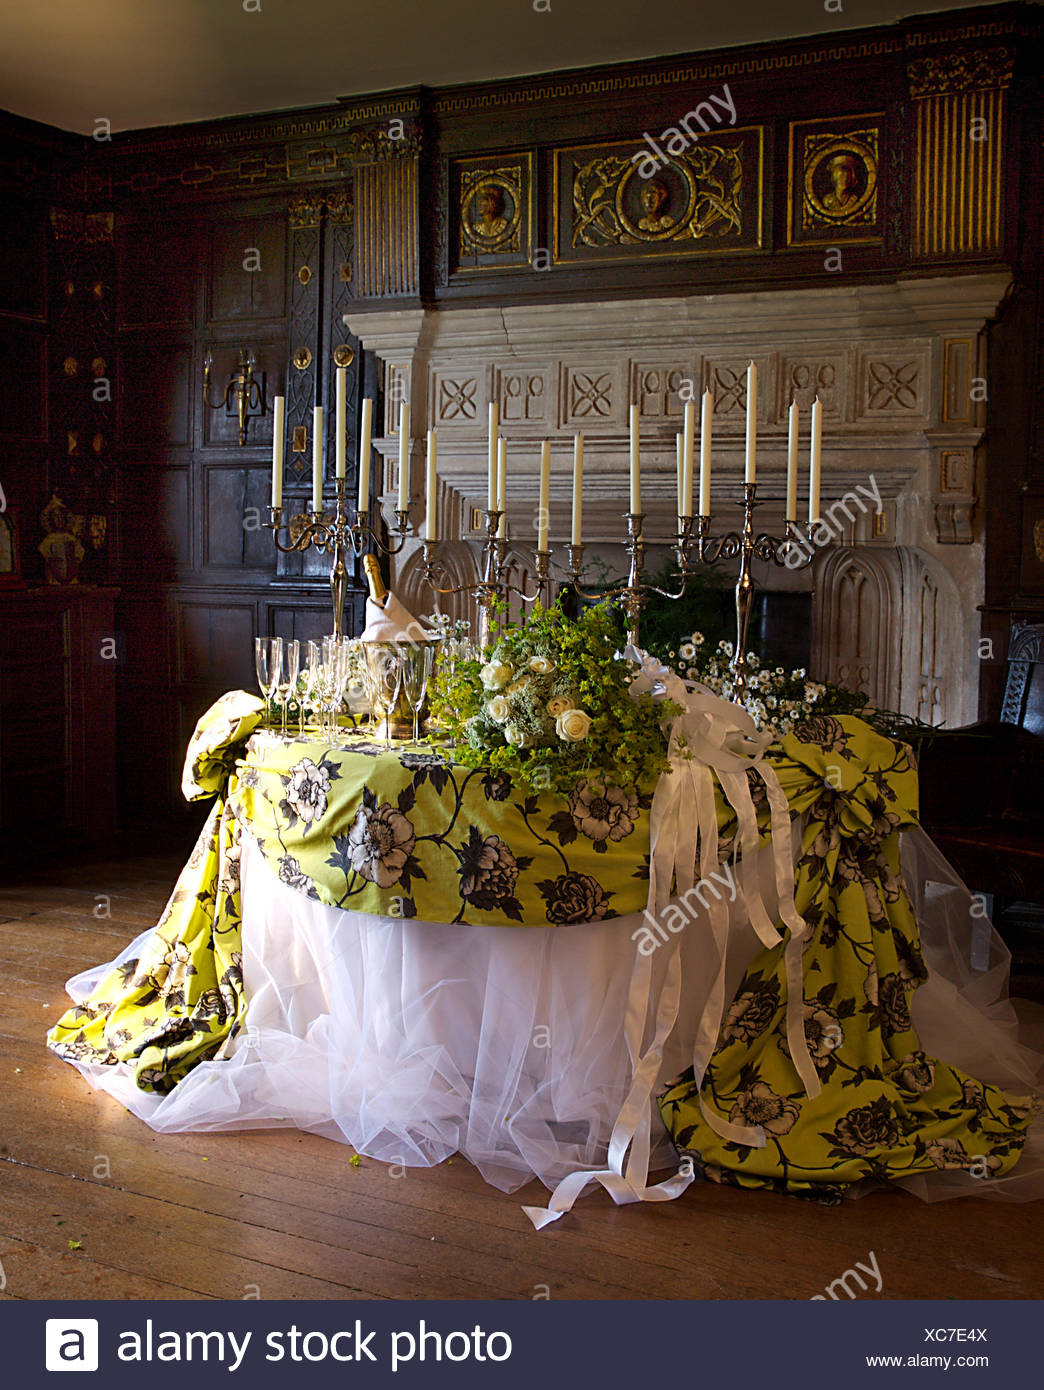 Opulent White Voile Cloth Draped With Green Floral Fabric On Table